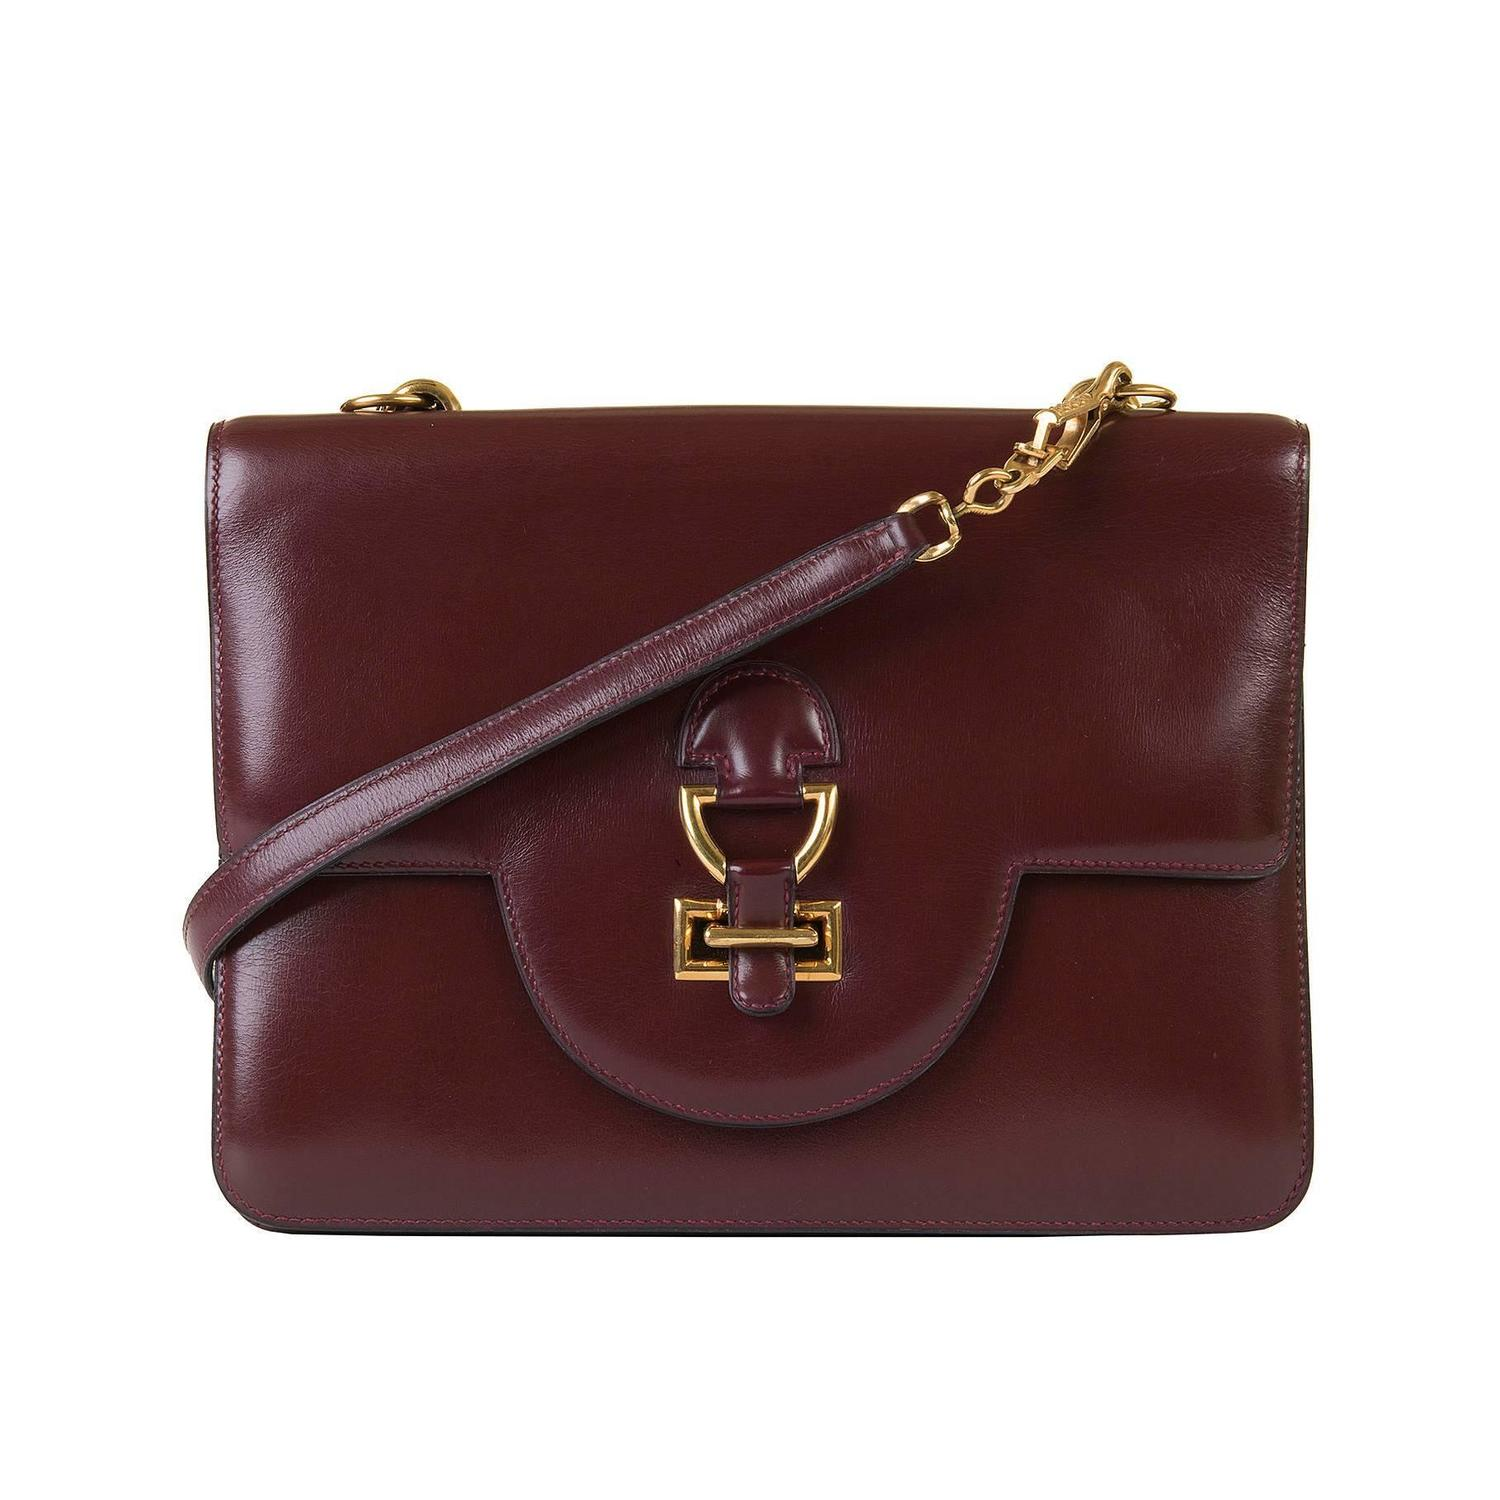 Pristine Vintage Hermes \u0026#39;Sandrine\u0026#39; Burgundy Box Leather Handbag at ...